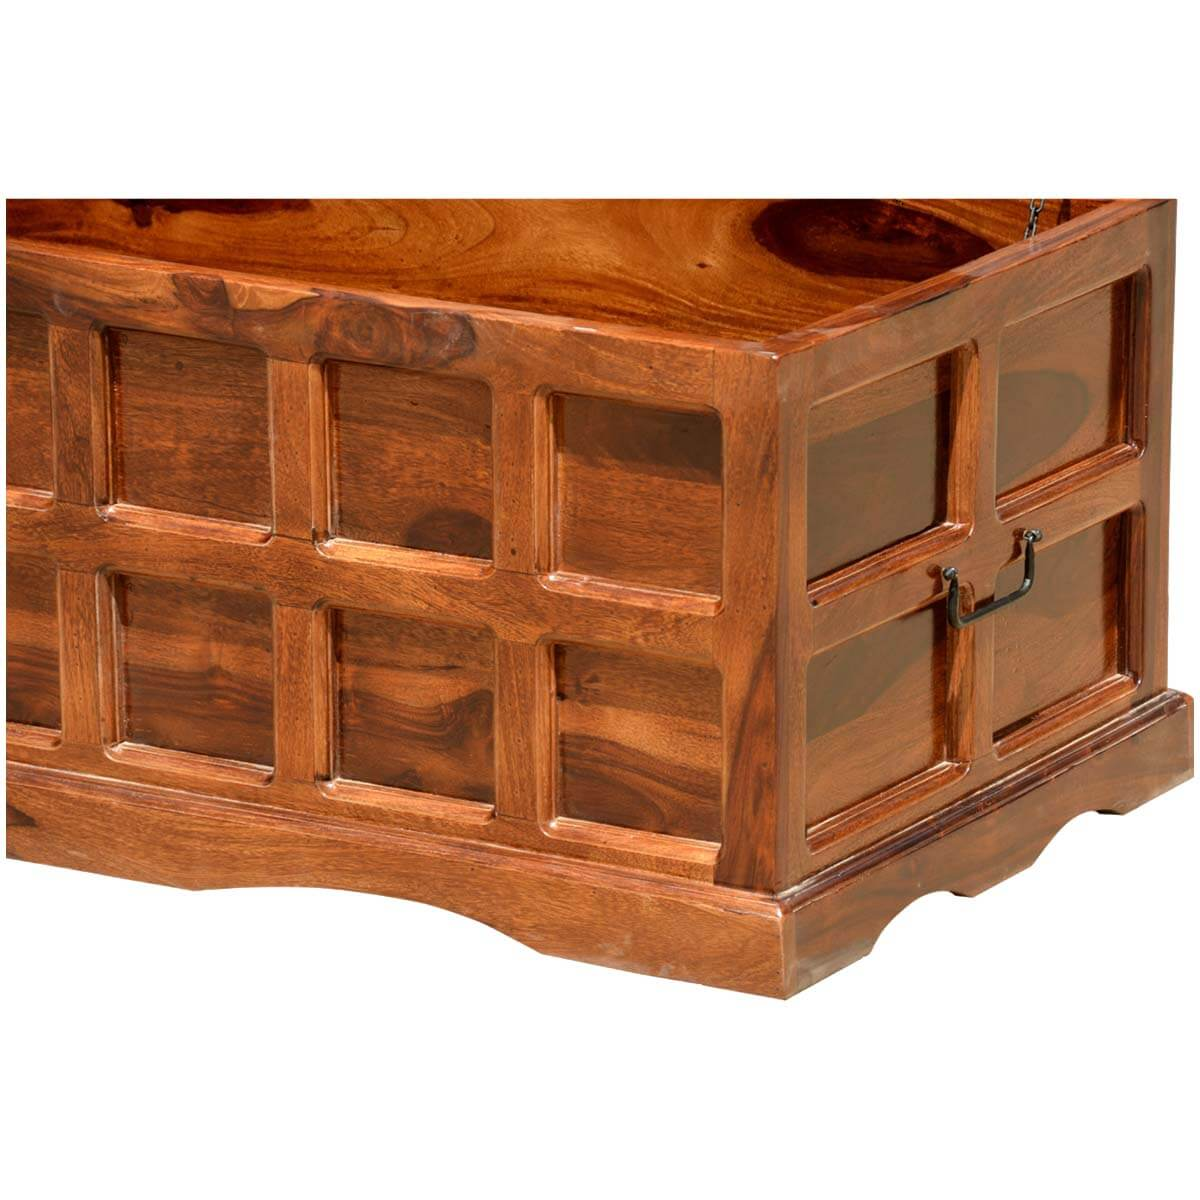 Solid wood handmade traditional coffee table storage box chest Traditional coffee table